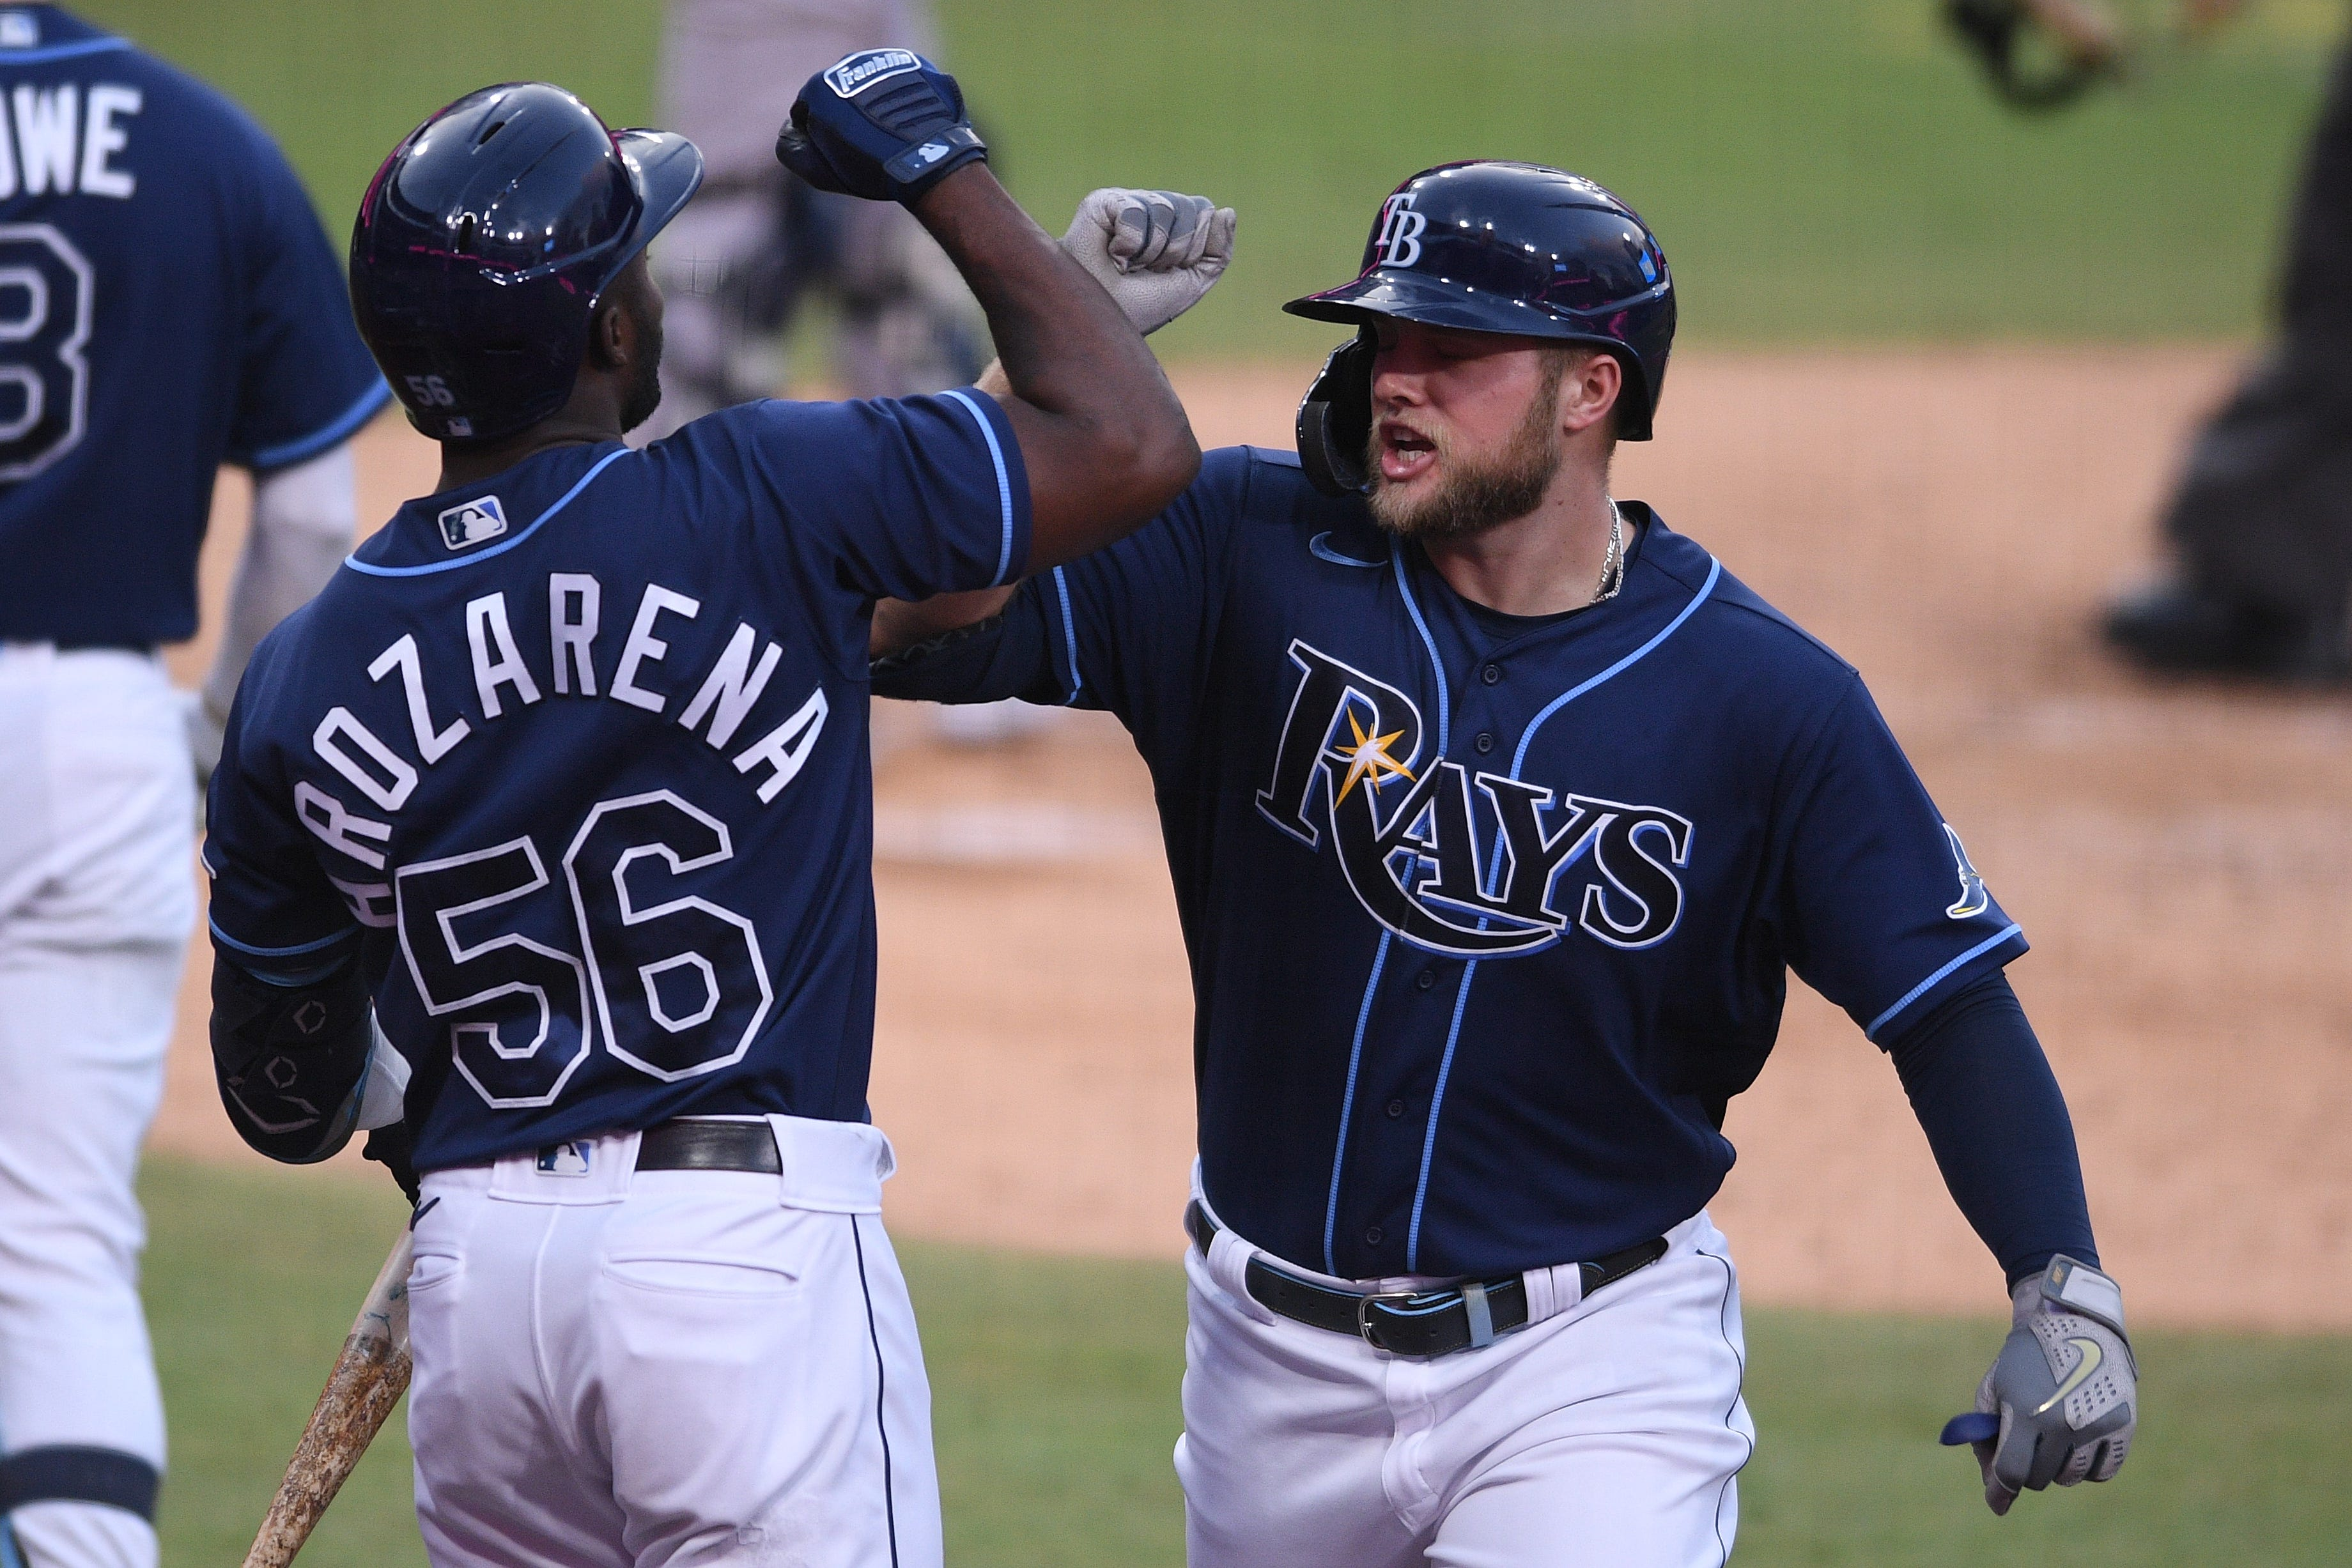 How to watch Rays vs. Astros ALCS on TV, live stream